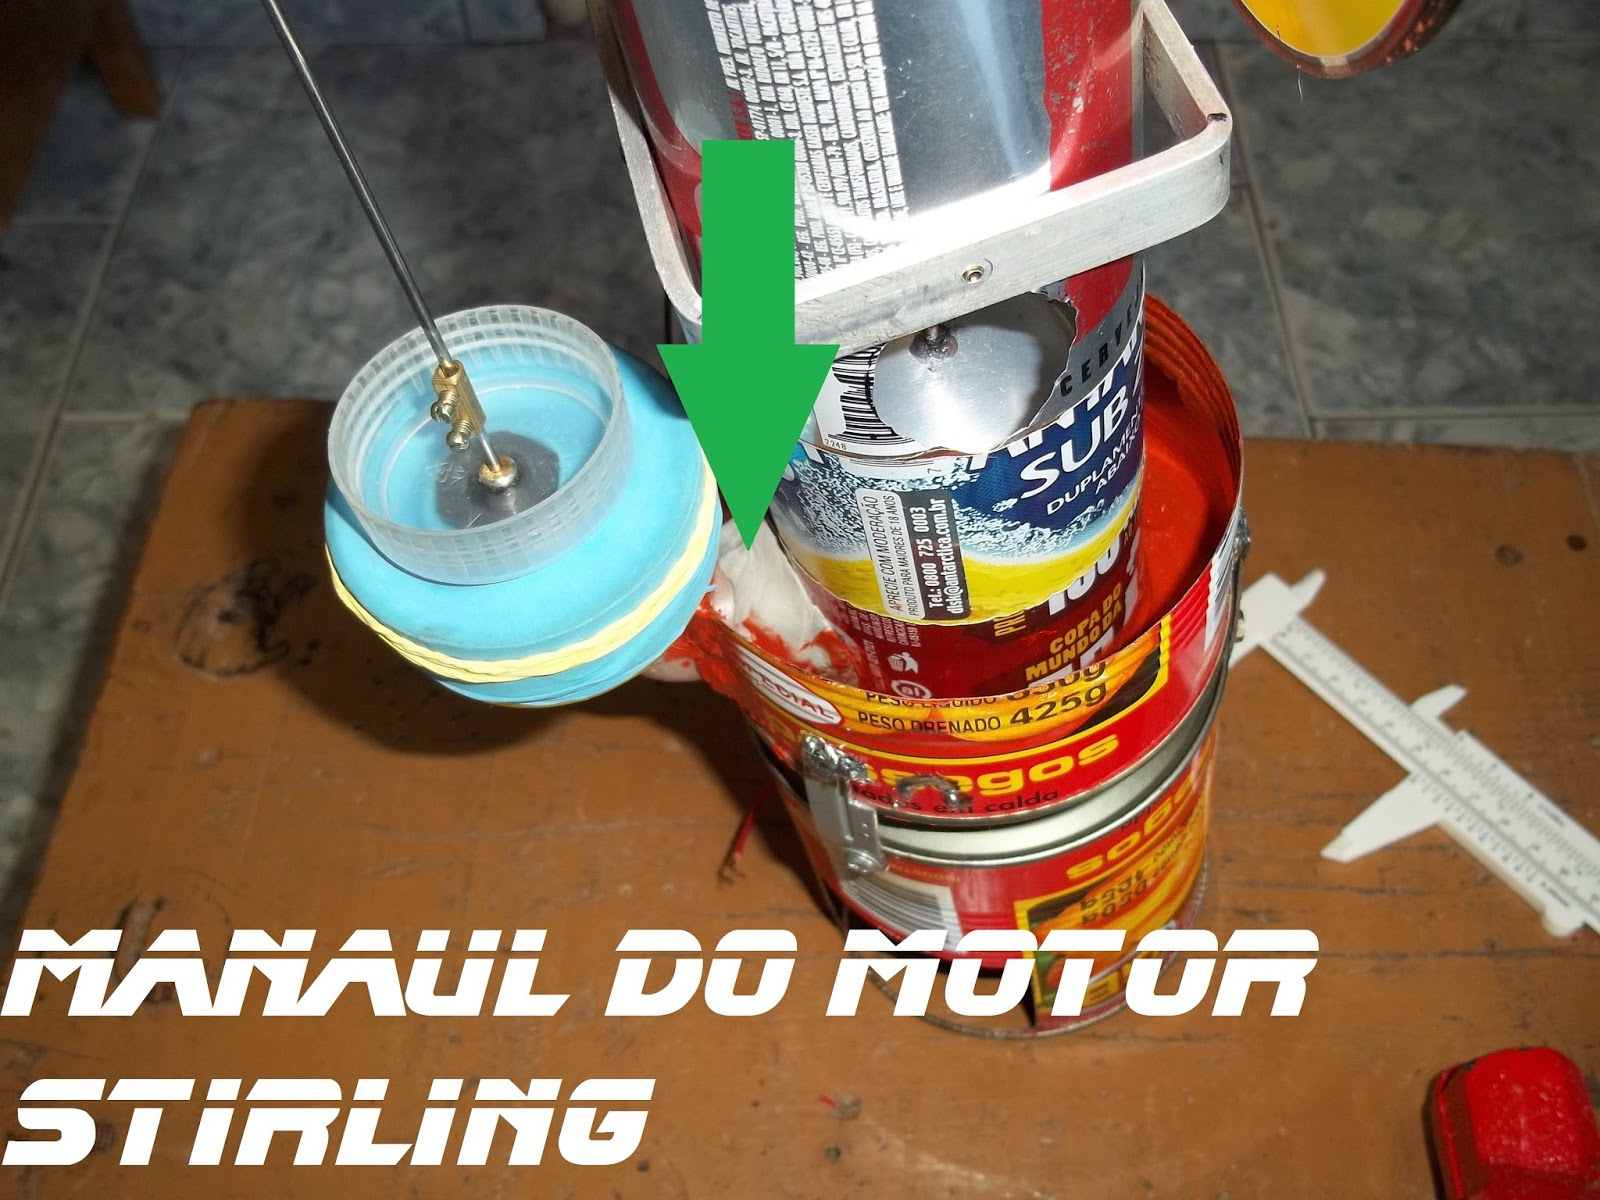 Manual do motor Stirling, o joelho foi colado no cilindro com cola durepoxi